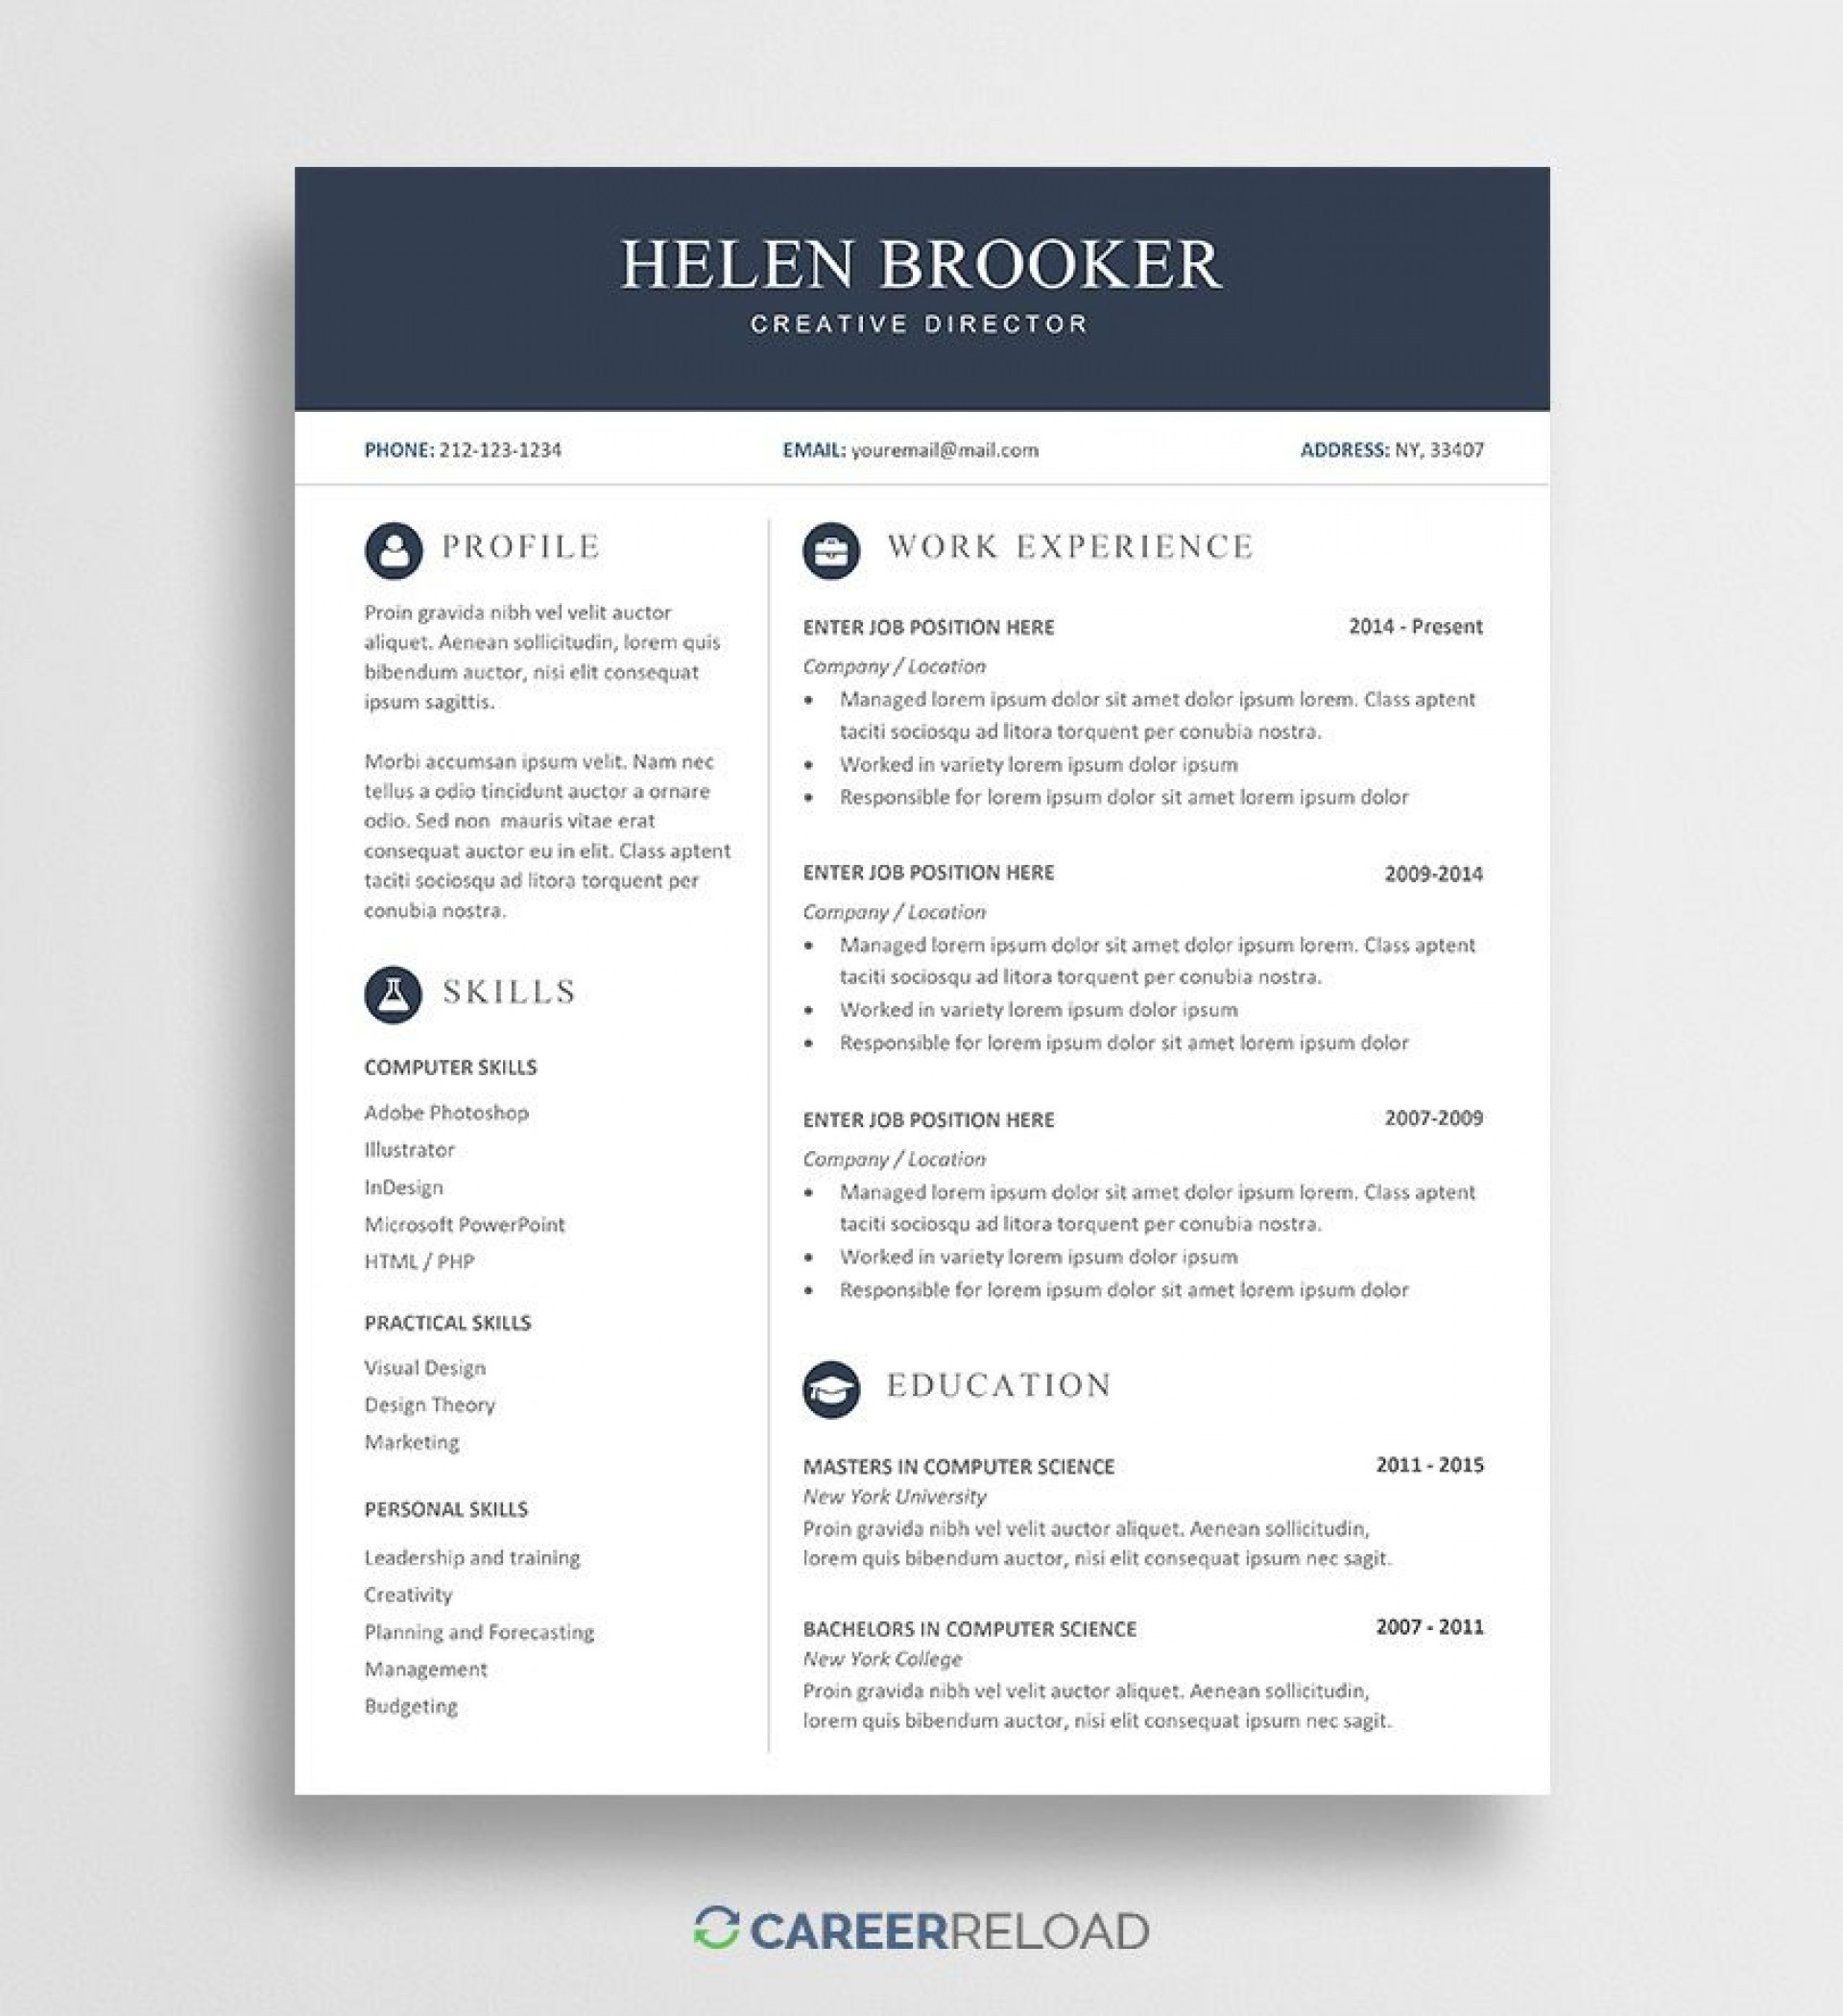 003 Incredible Download Resume Template Microsoft Word Photo  Creative Free For Fresher Functional1920